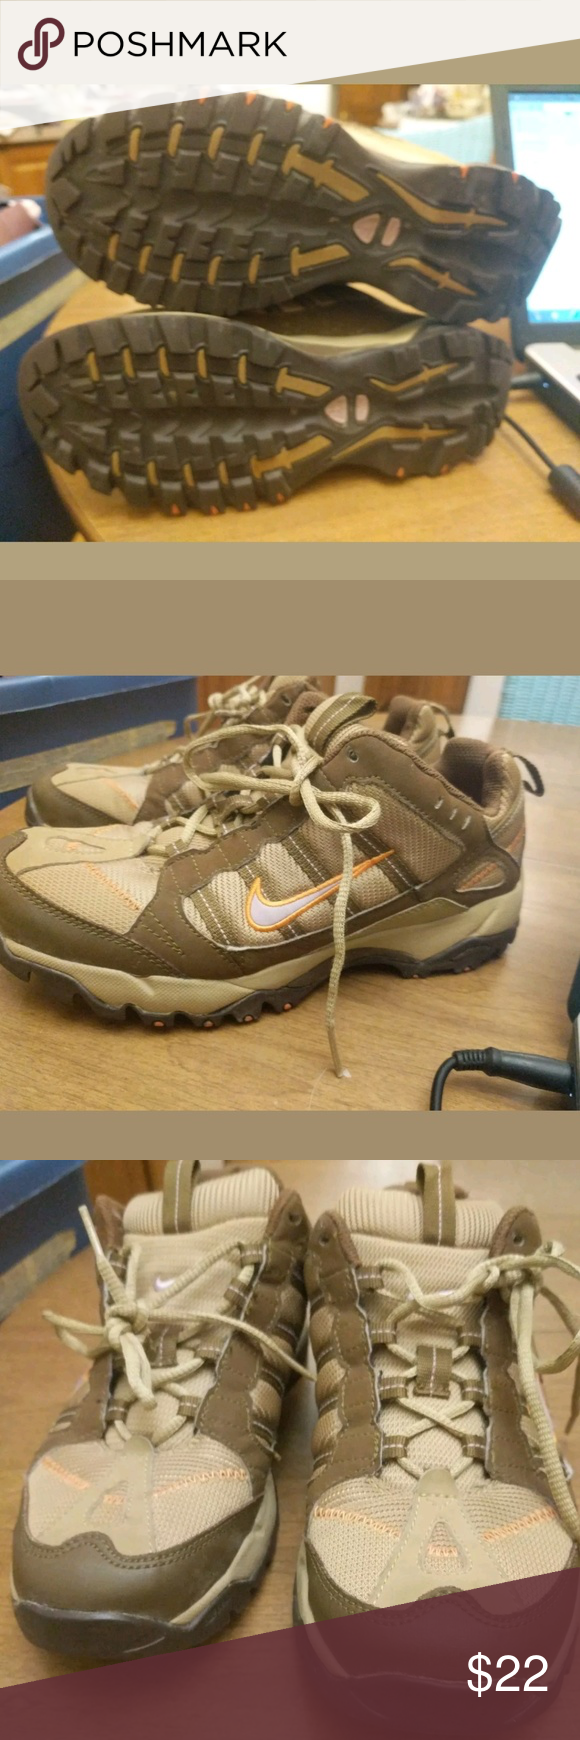 99 Nike ACG all-trac Trail Athletic Shoes 7.5 Up for bid is a nice ... 1a9a710efb